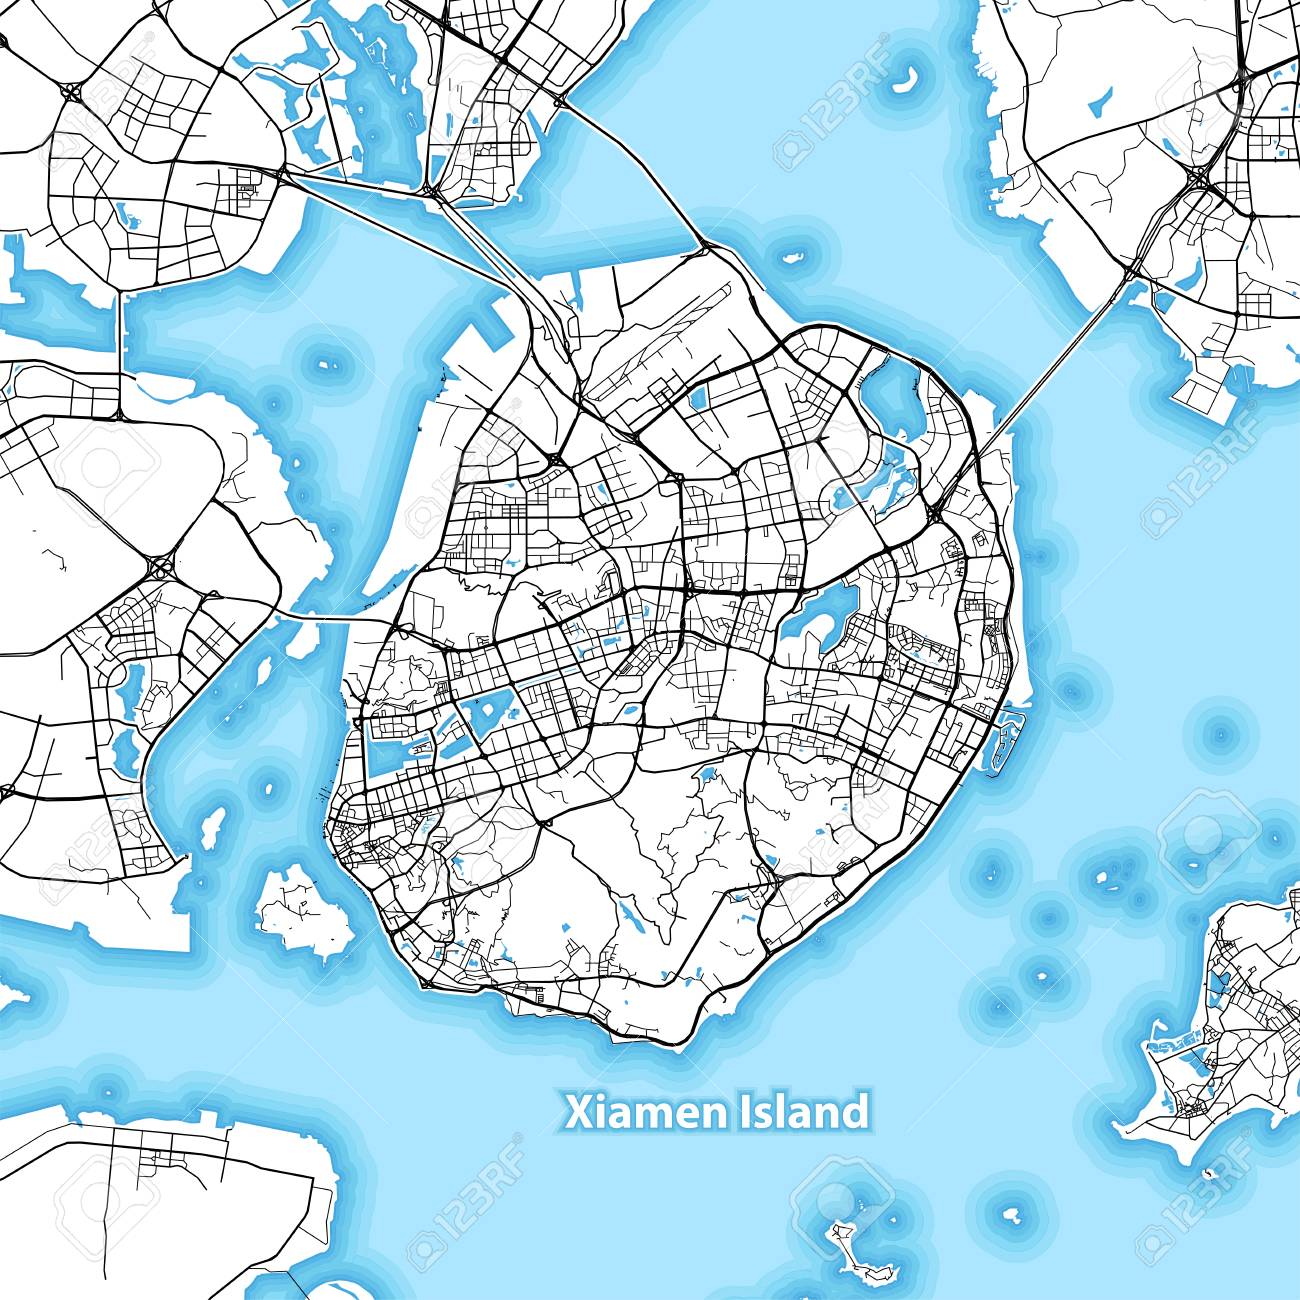 Map Of Xiamen Island China With The Largest Highways Roads